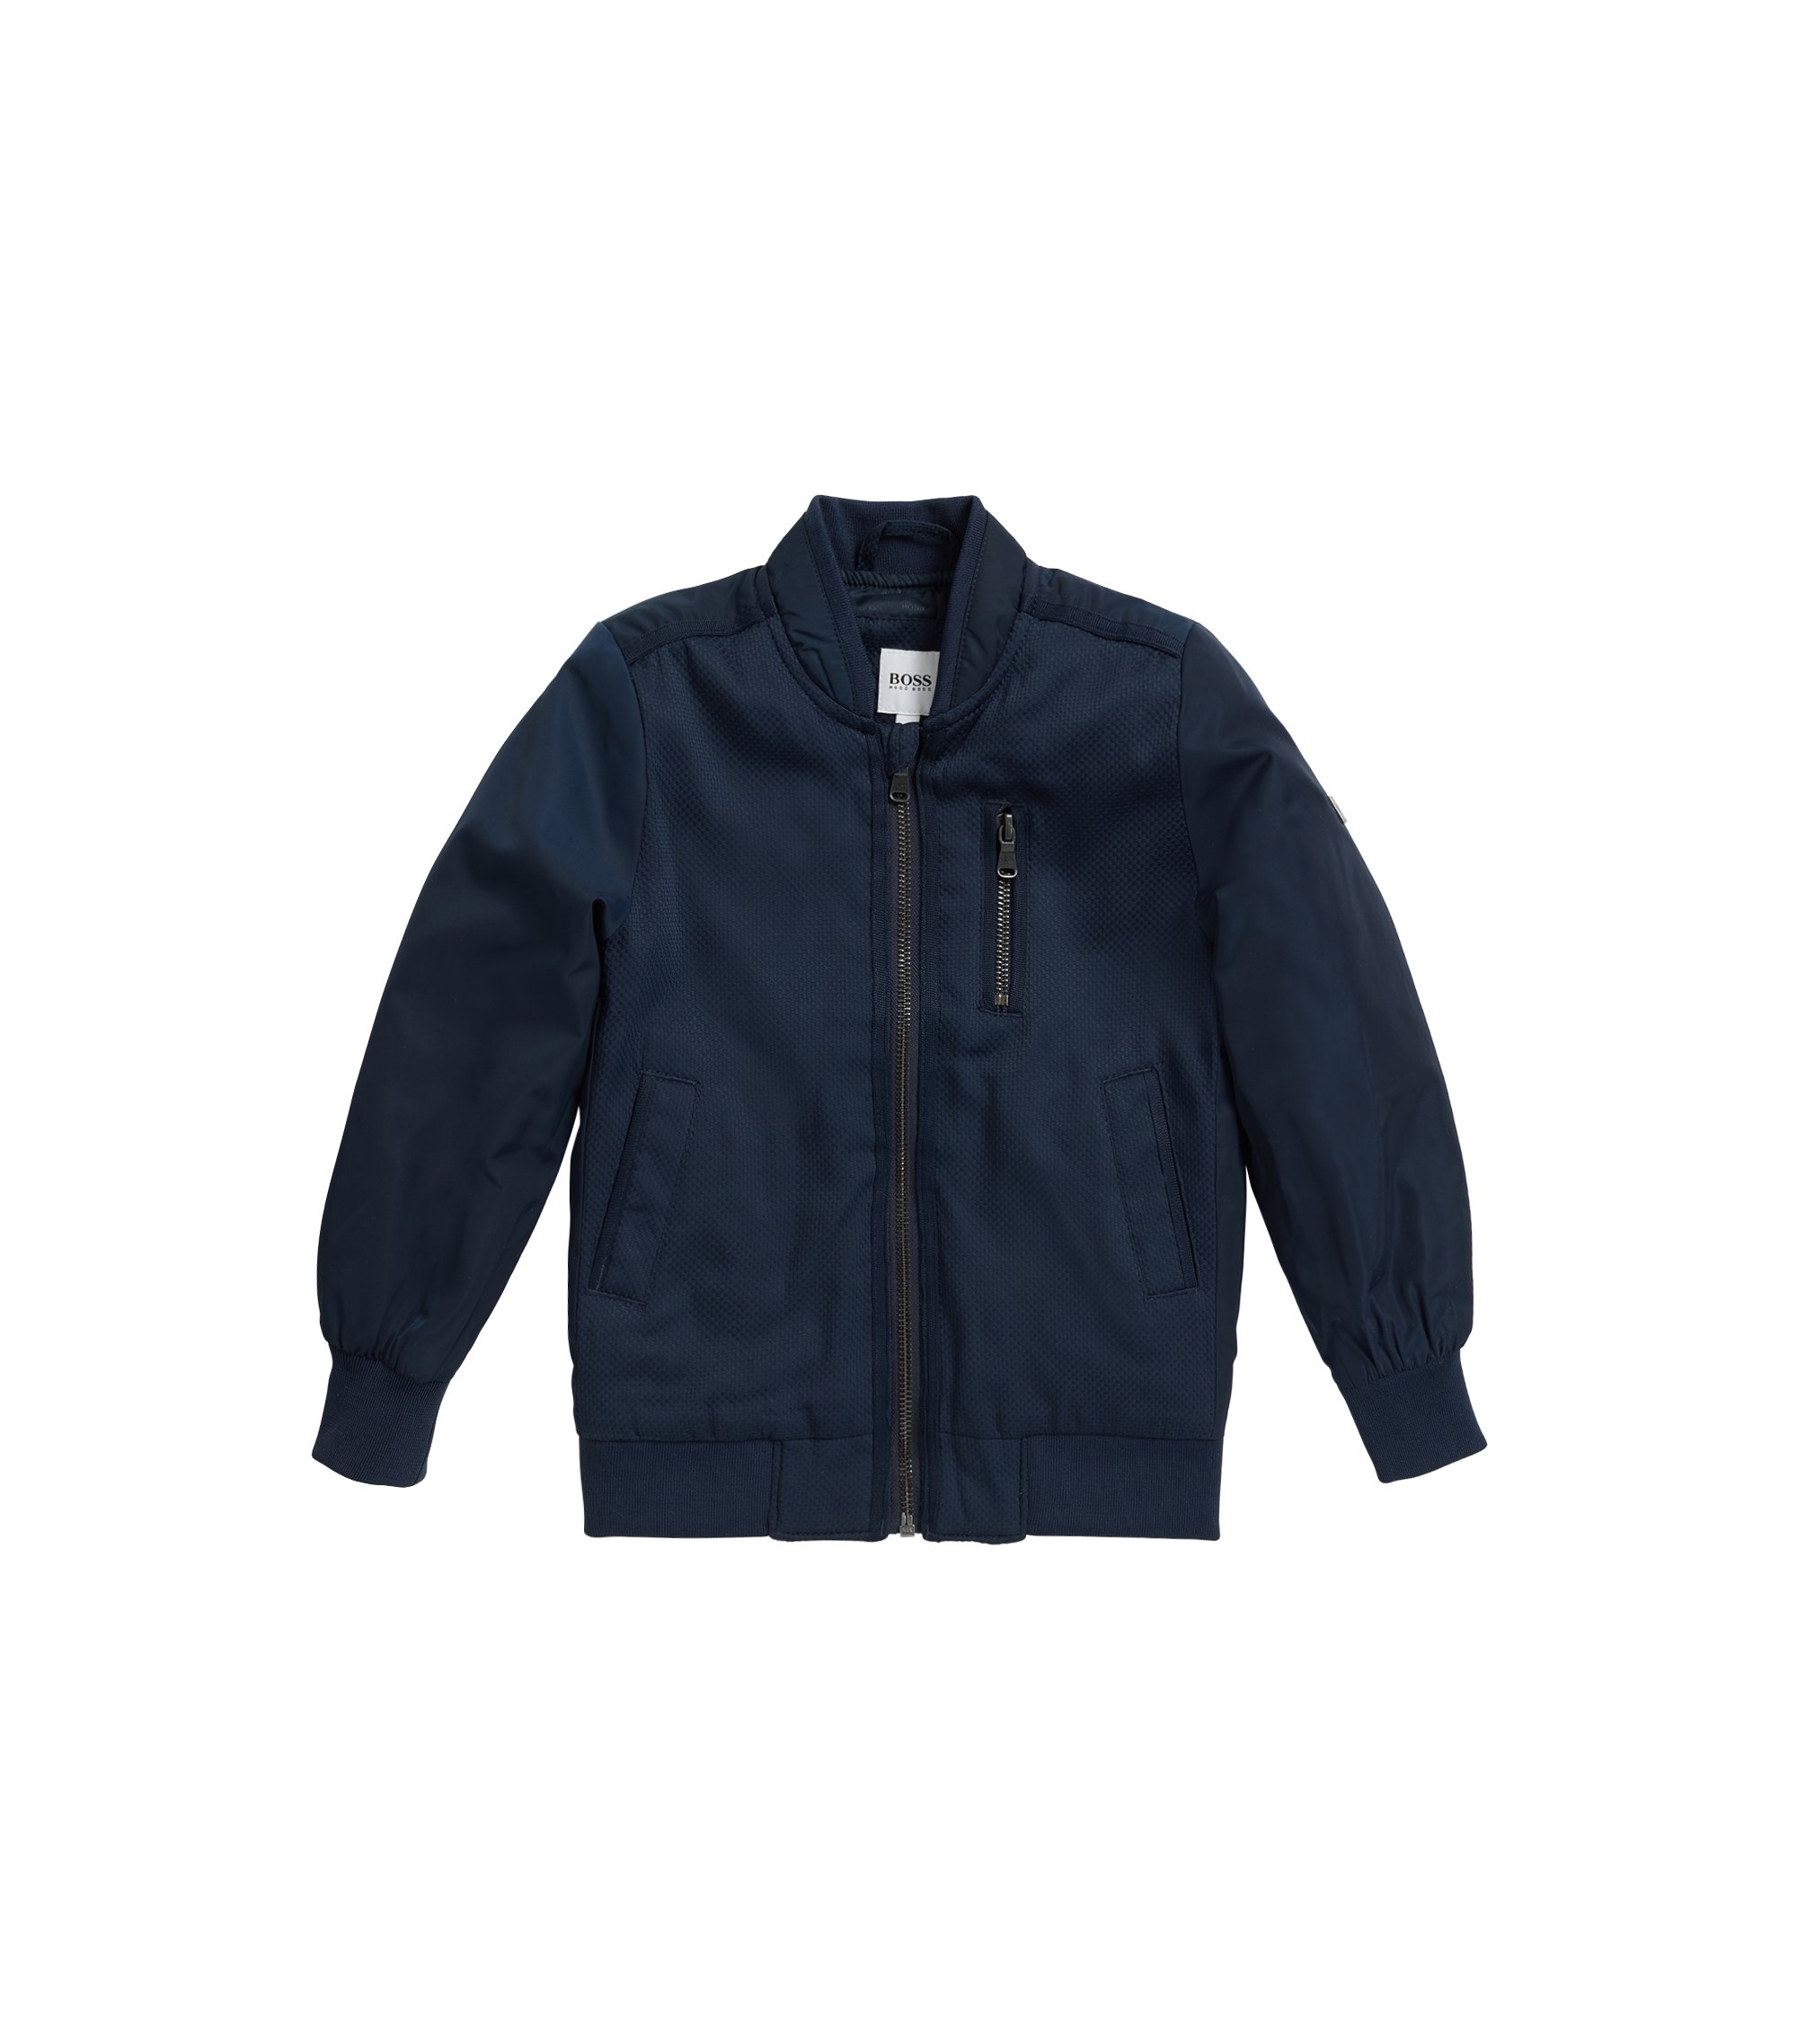 Kids' bomber jacket with jacquard lining, Dark Blue